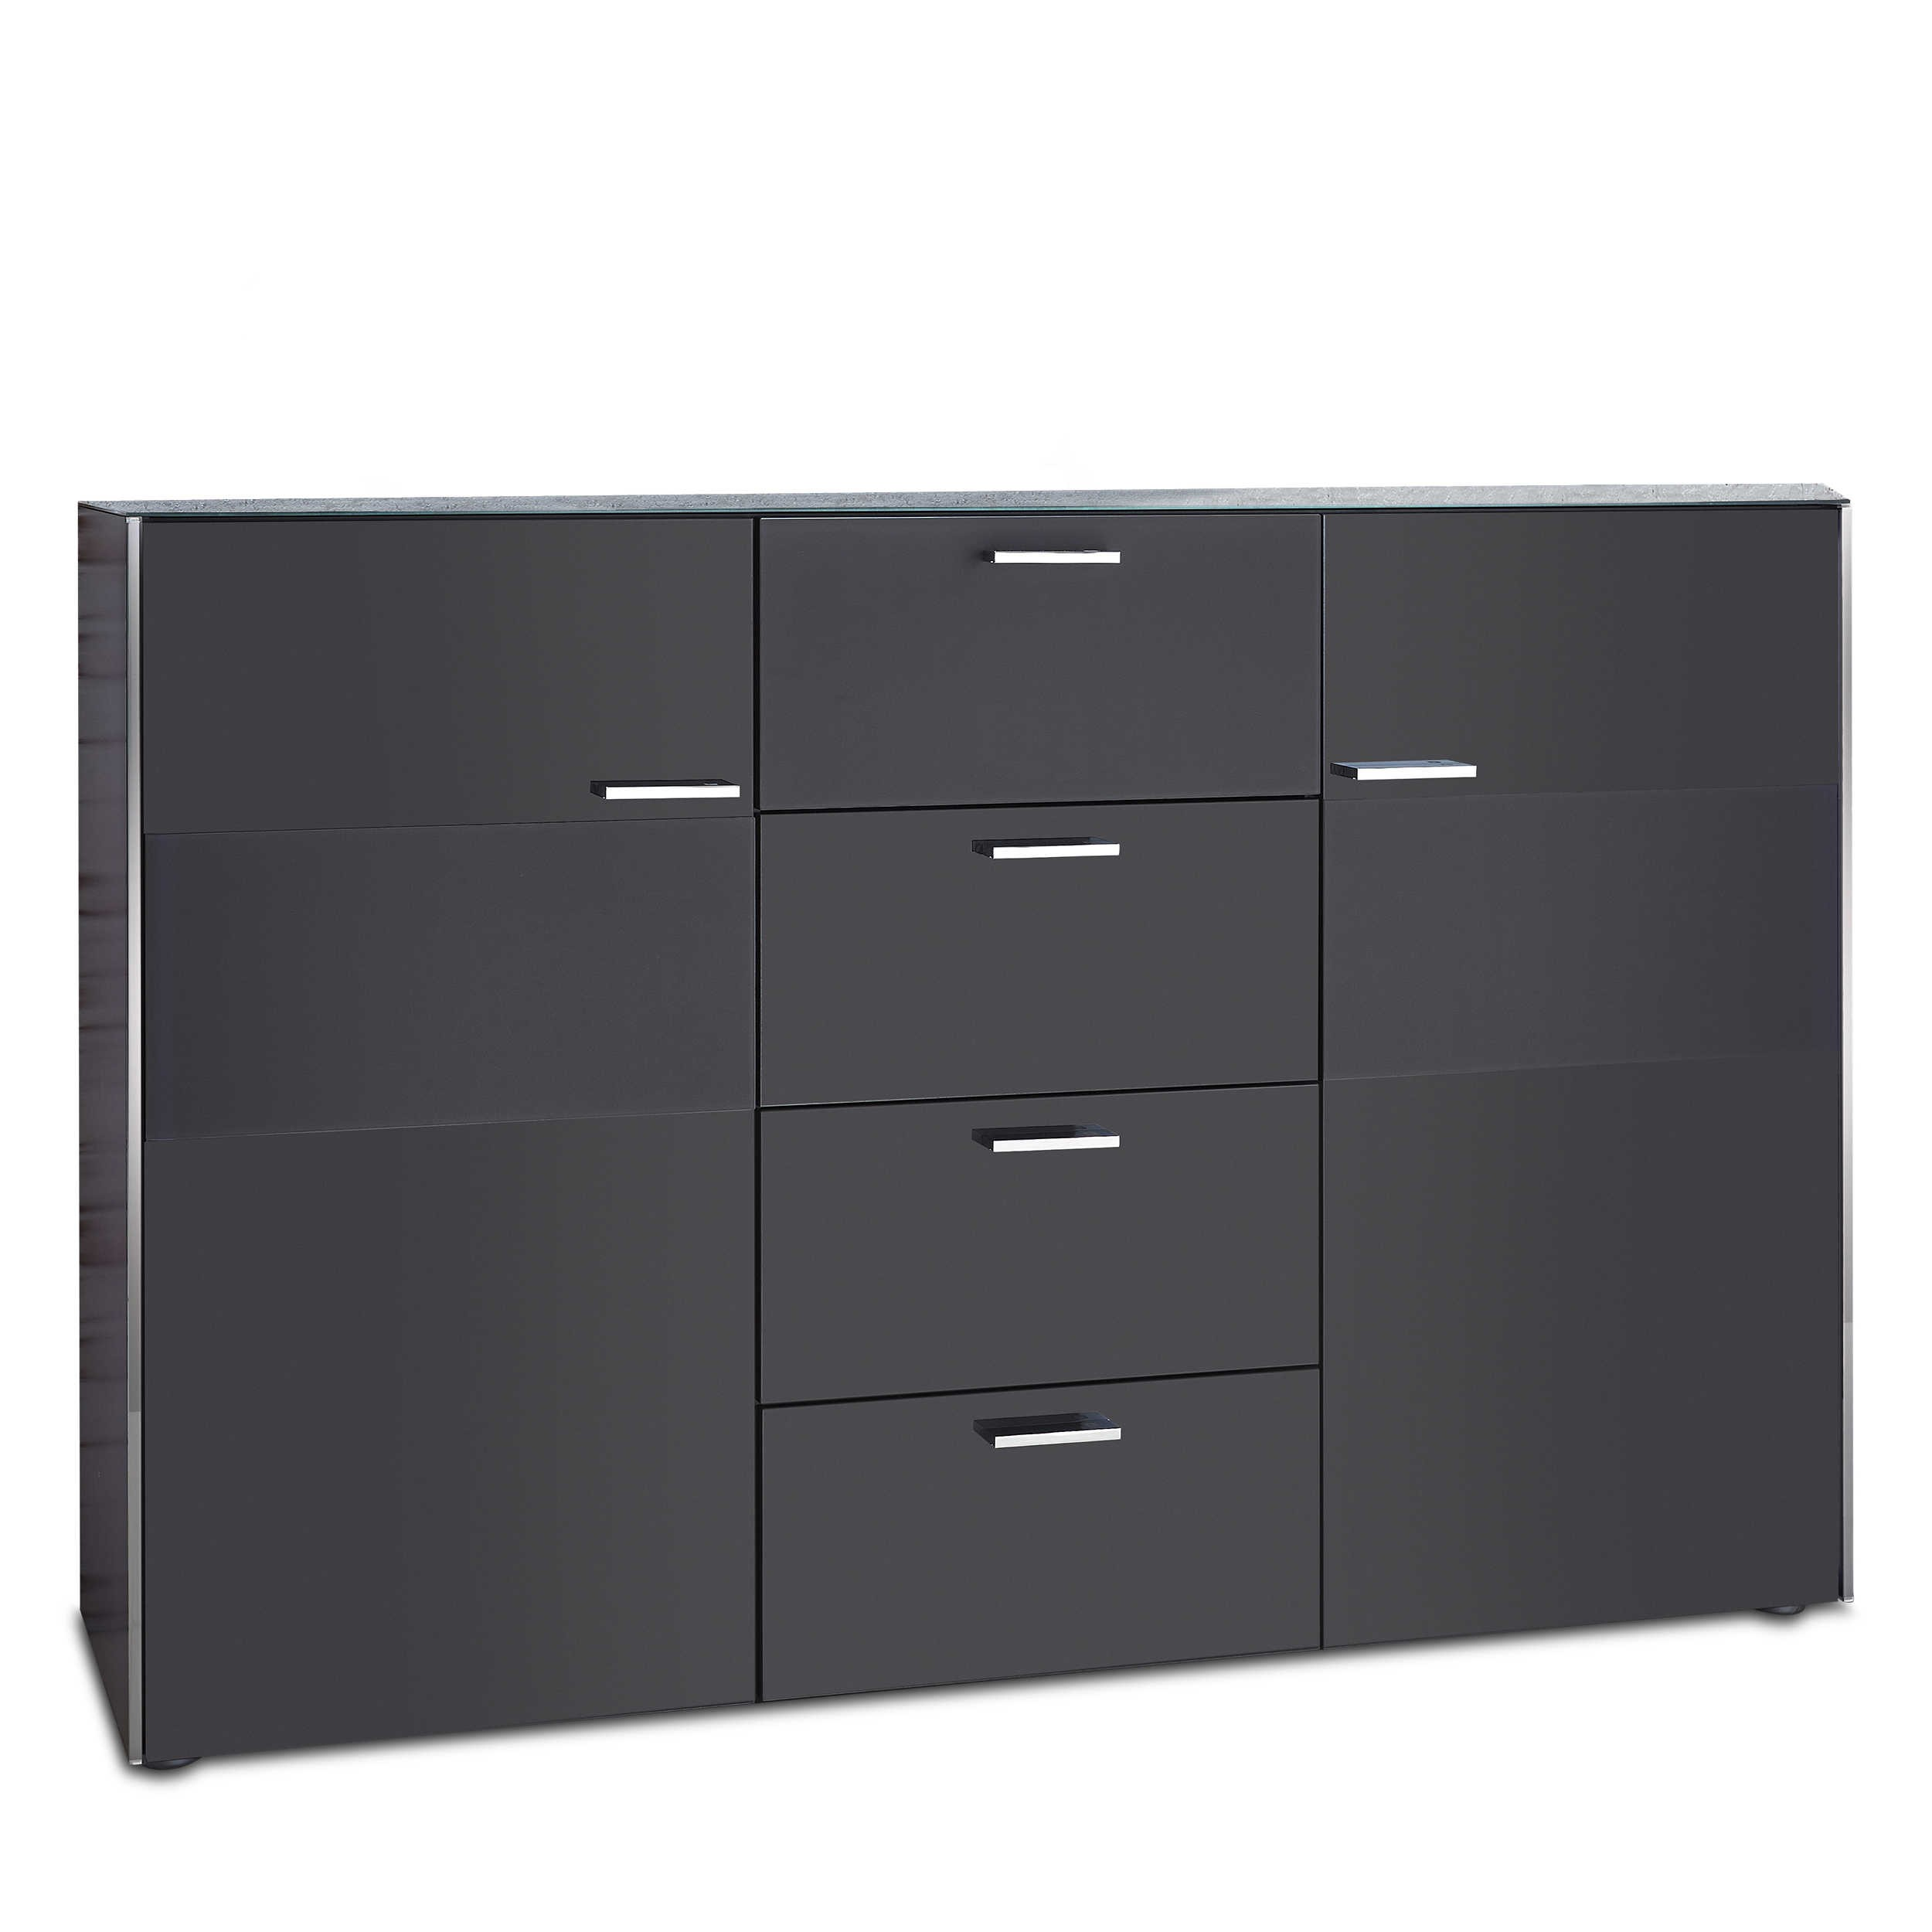 leonardo living kommode dream anthrazit lack hochglanz online kaufen bei woonio. Black Bedroom Furniture Sets. Home Design Ideas